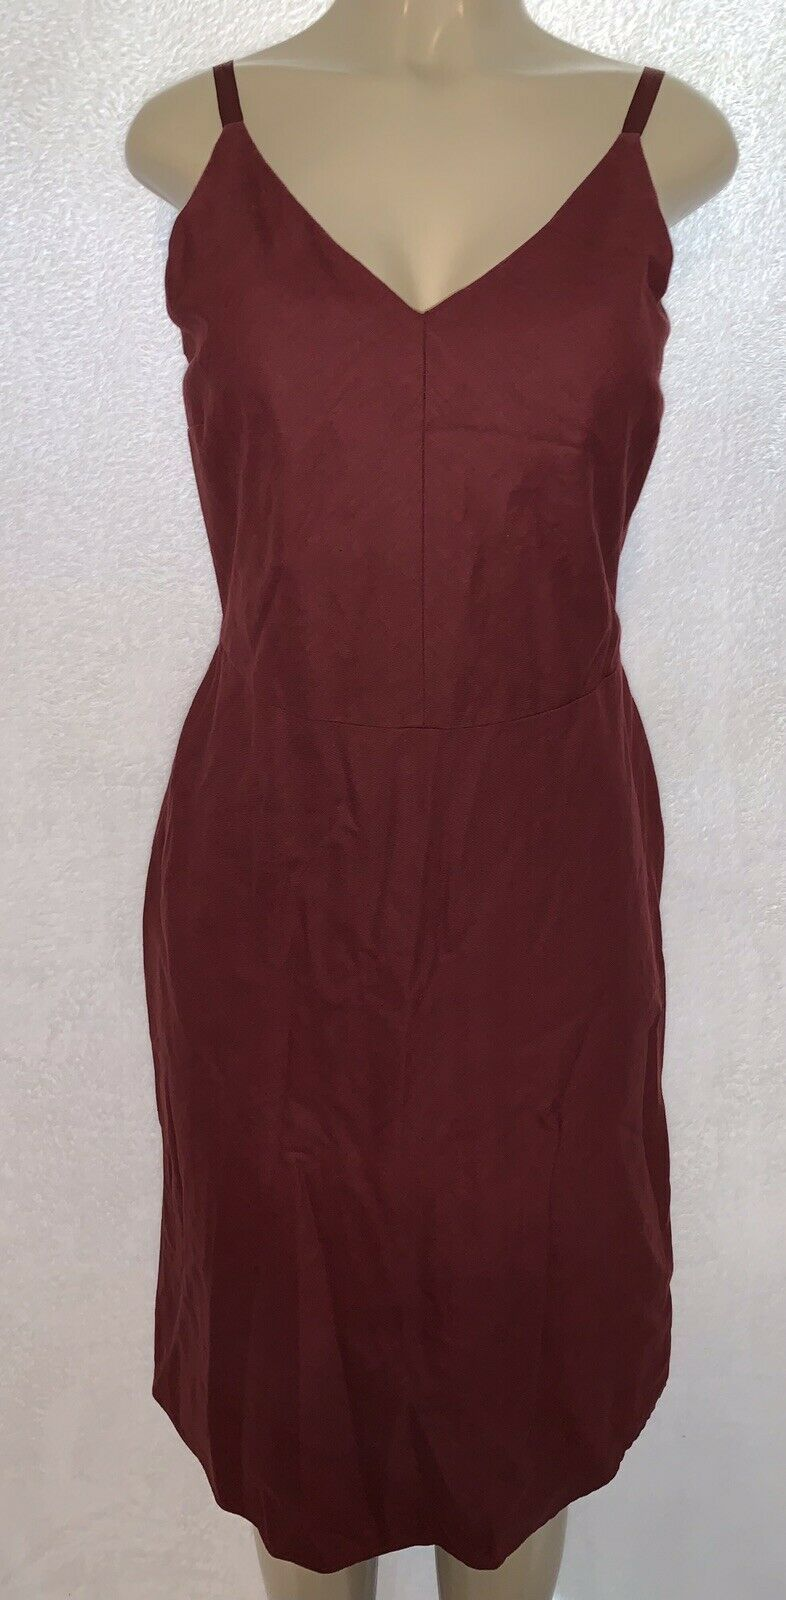 Primary image for Old Navy Women's Garnet Burgundy Linen Spaghetti Strap Long Dress Size 8 Boho